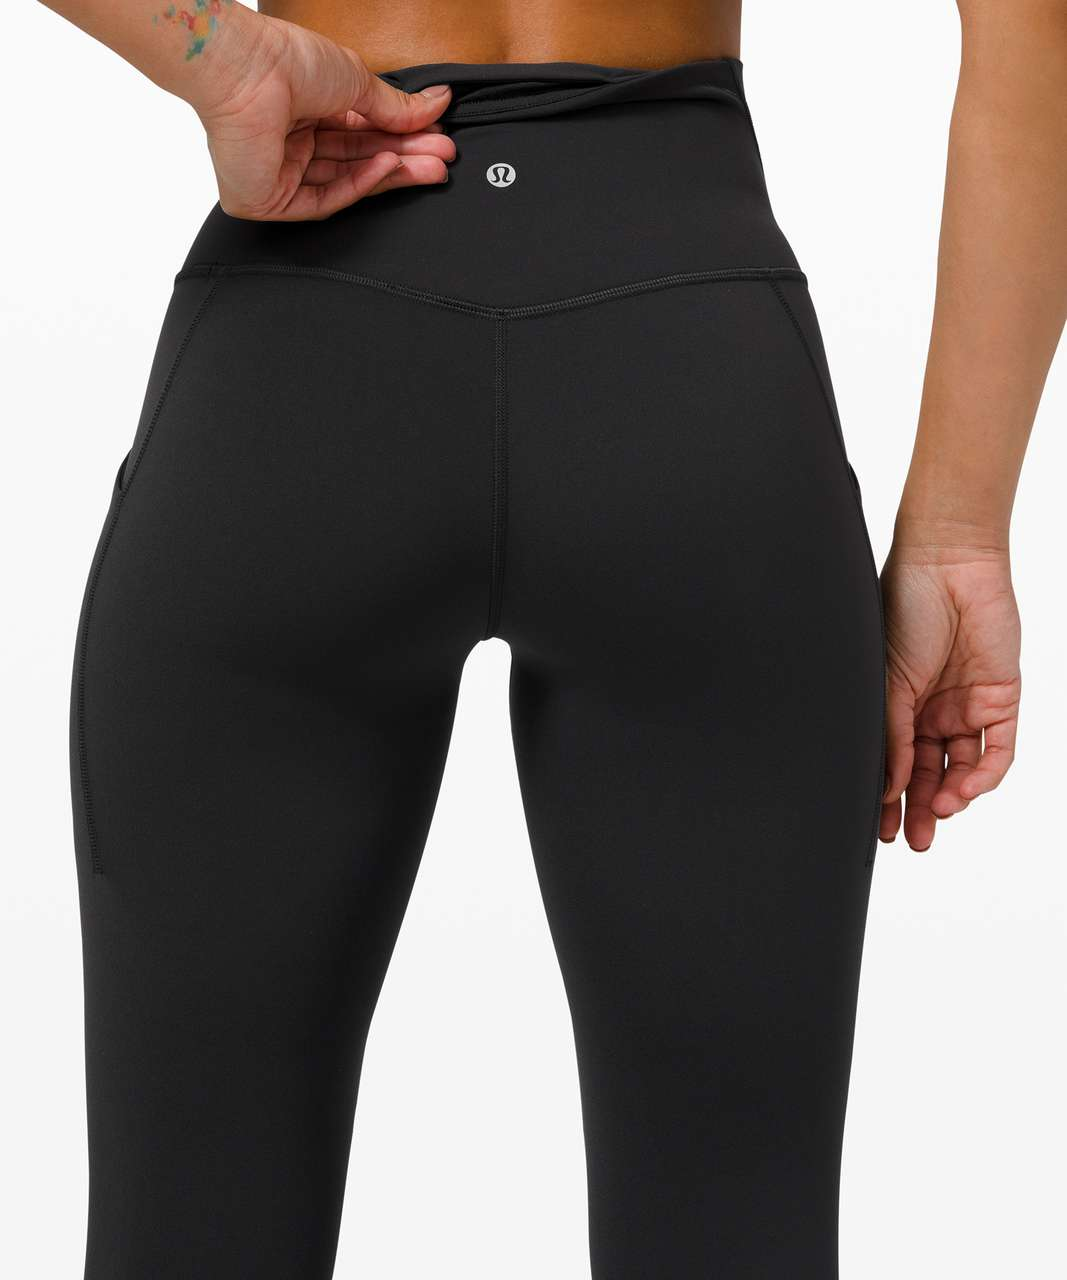 "Lululemon Align High Rise Pant with Pockets 25"" - Black"